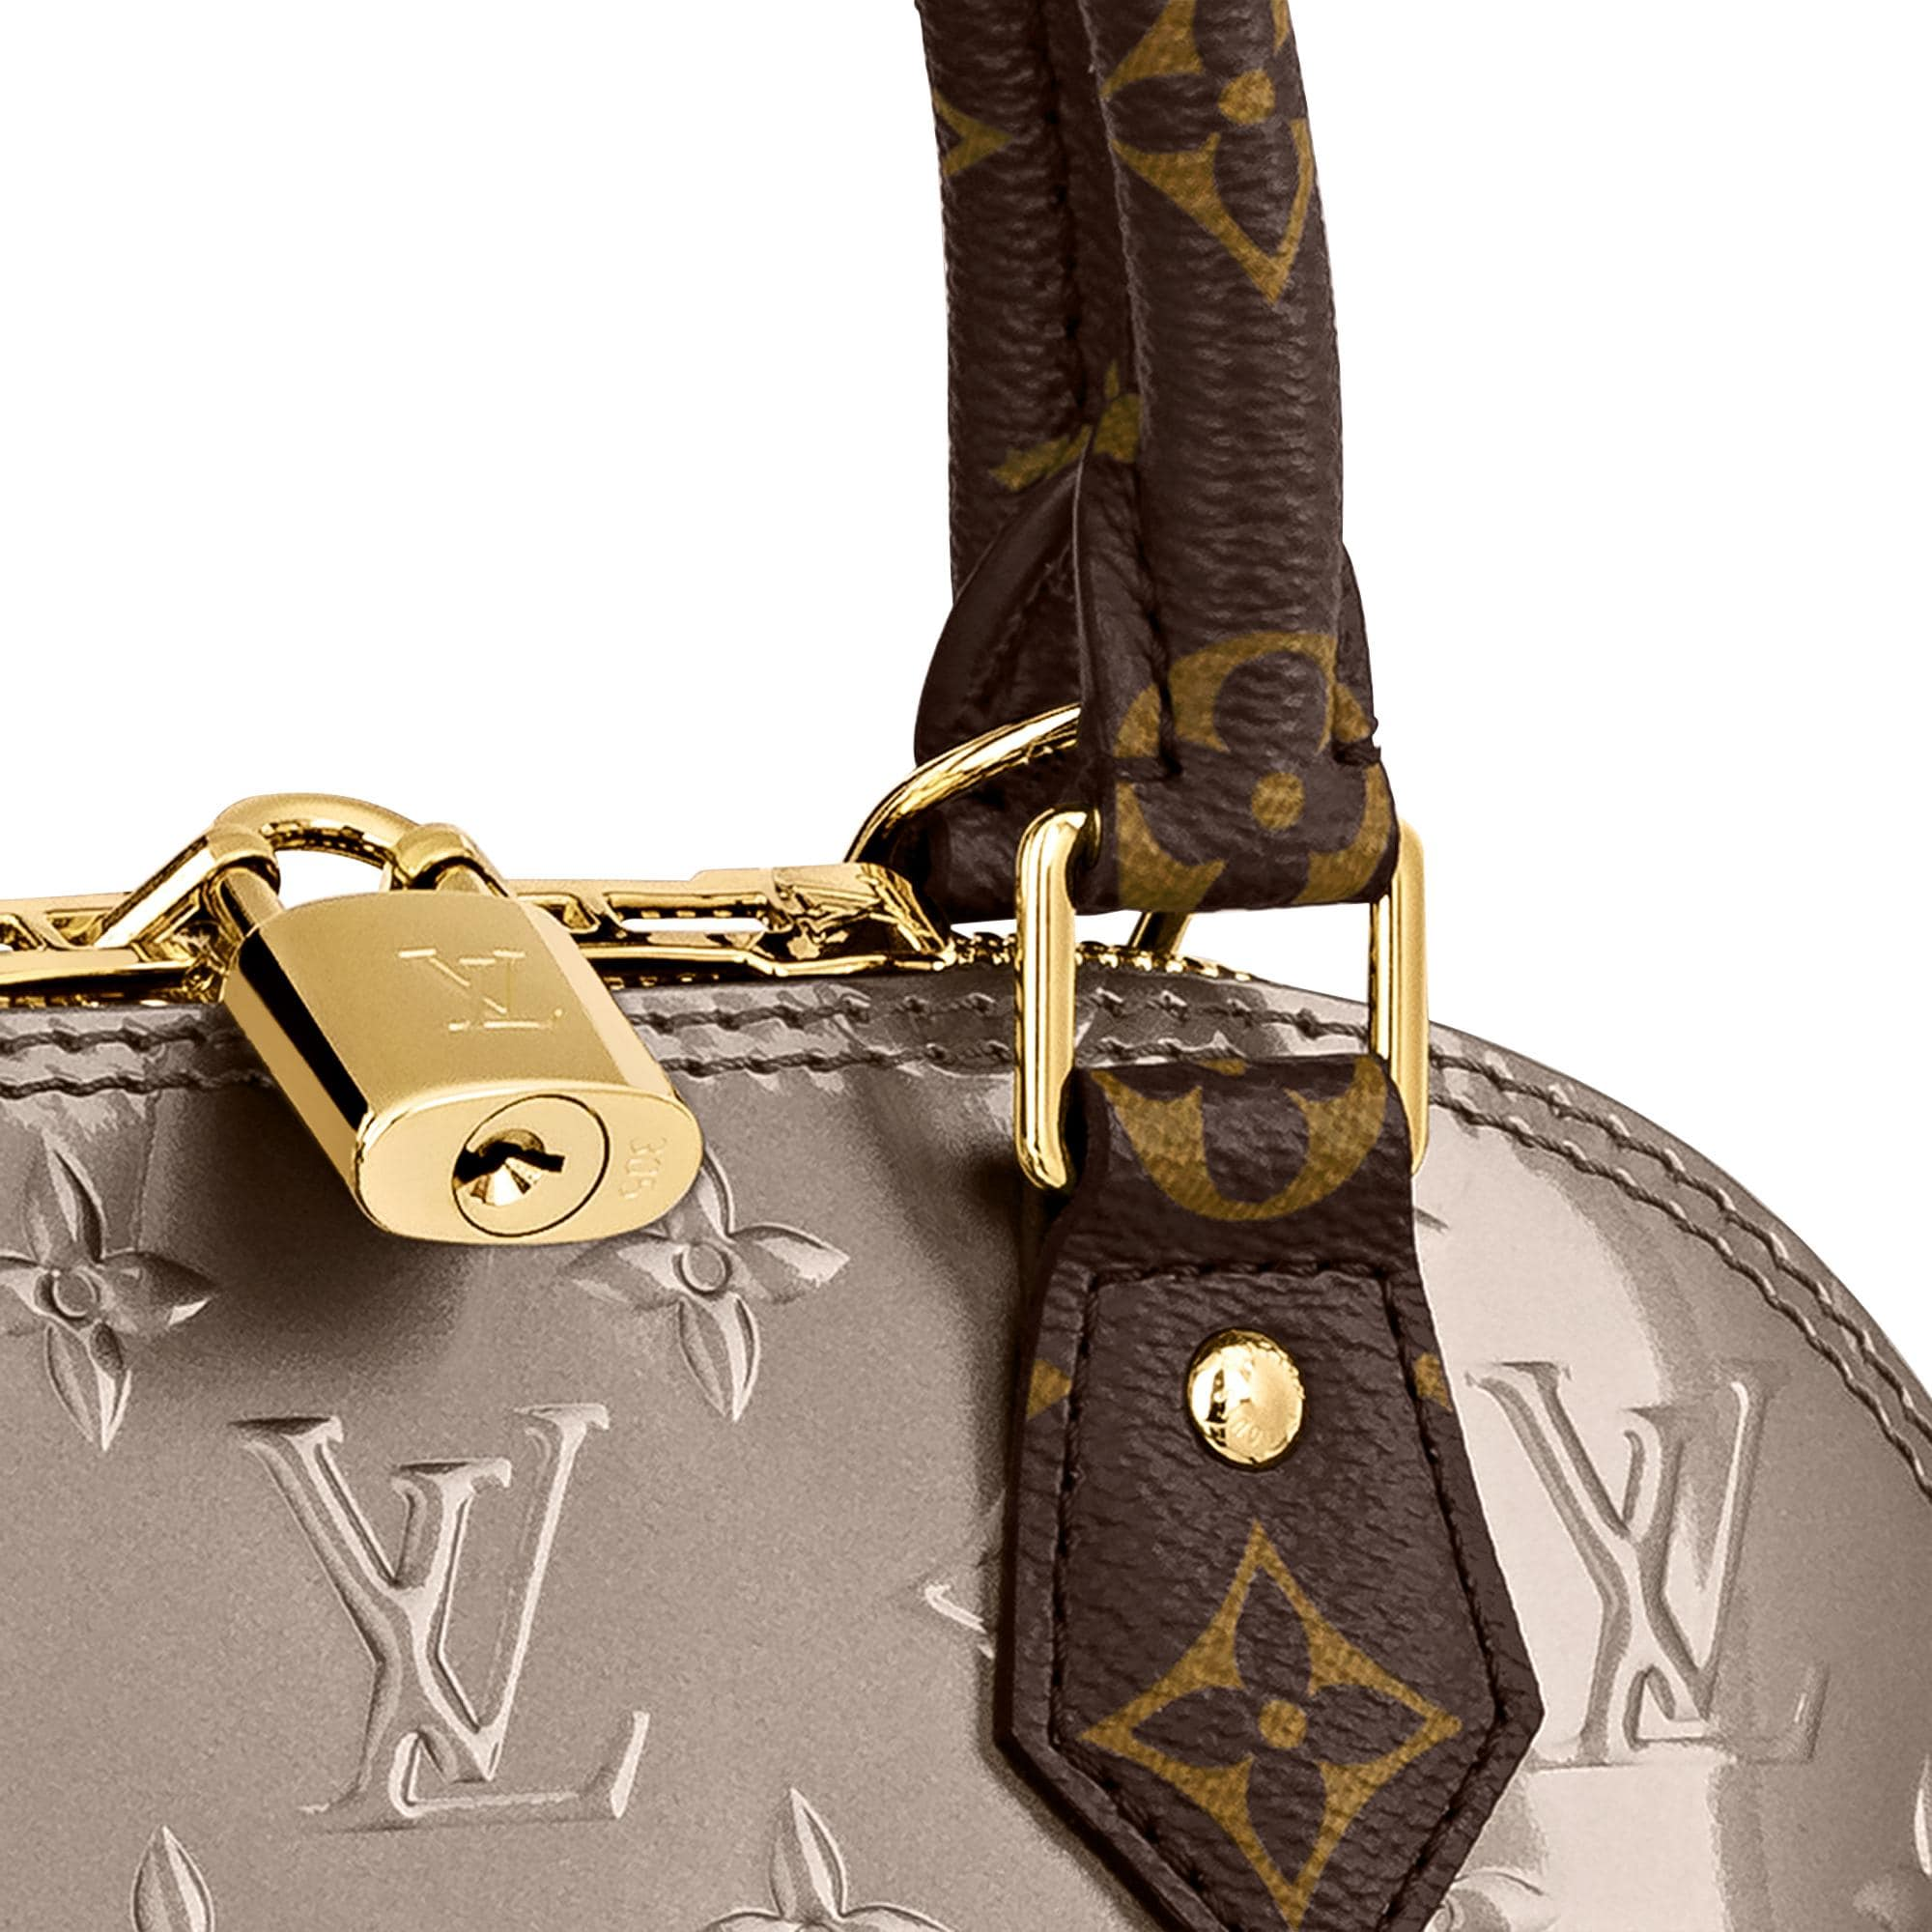 유럽직배송 루이비통 LOUIS VUITTON Néo Alma BB M44862